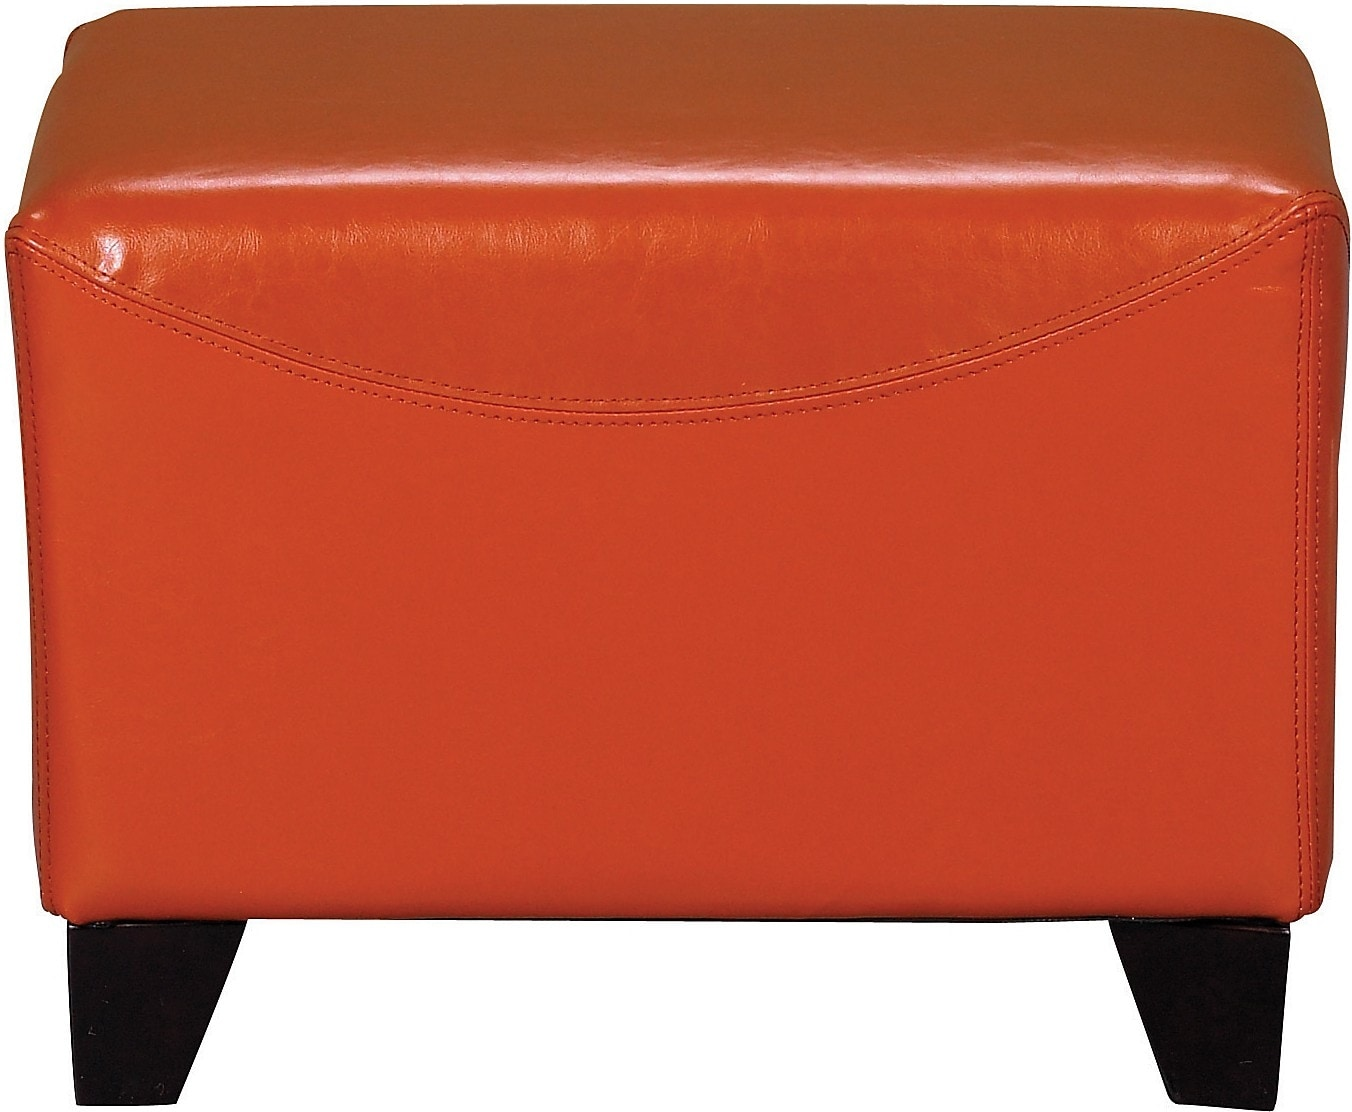 Bonded Leather Ottoman - Spice